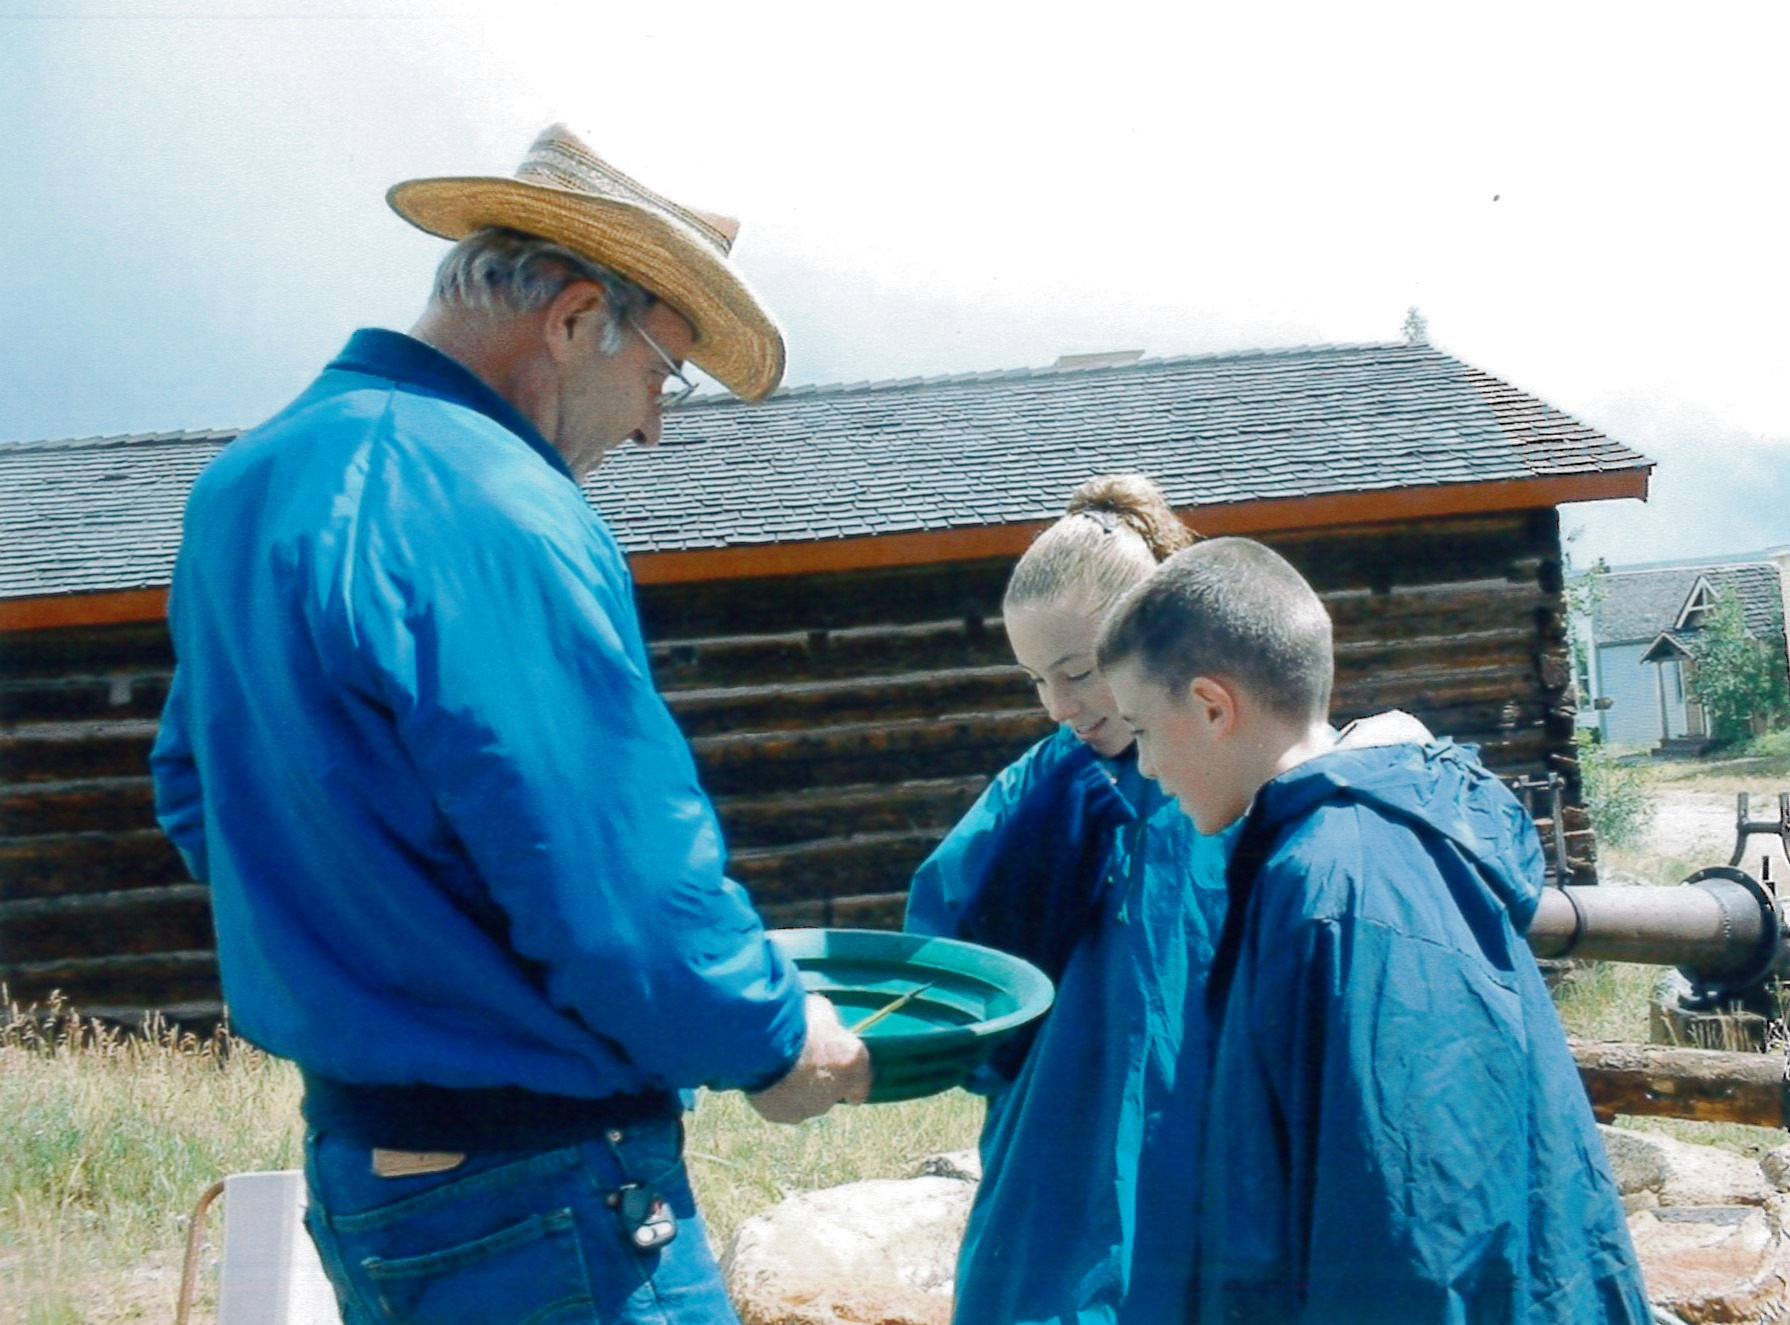 Local man in period dress helps kids pan for gold on Community Day at the South Park City Museum in Park County, Colorado.